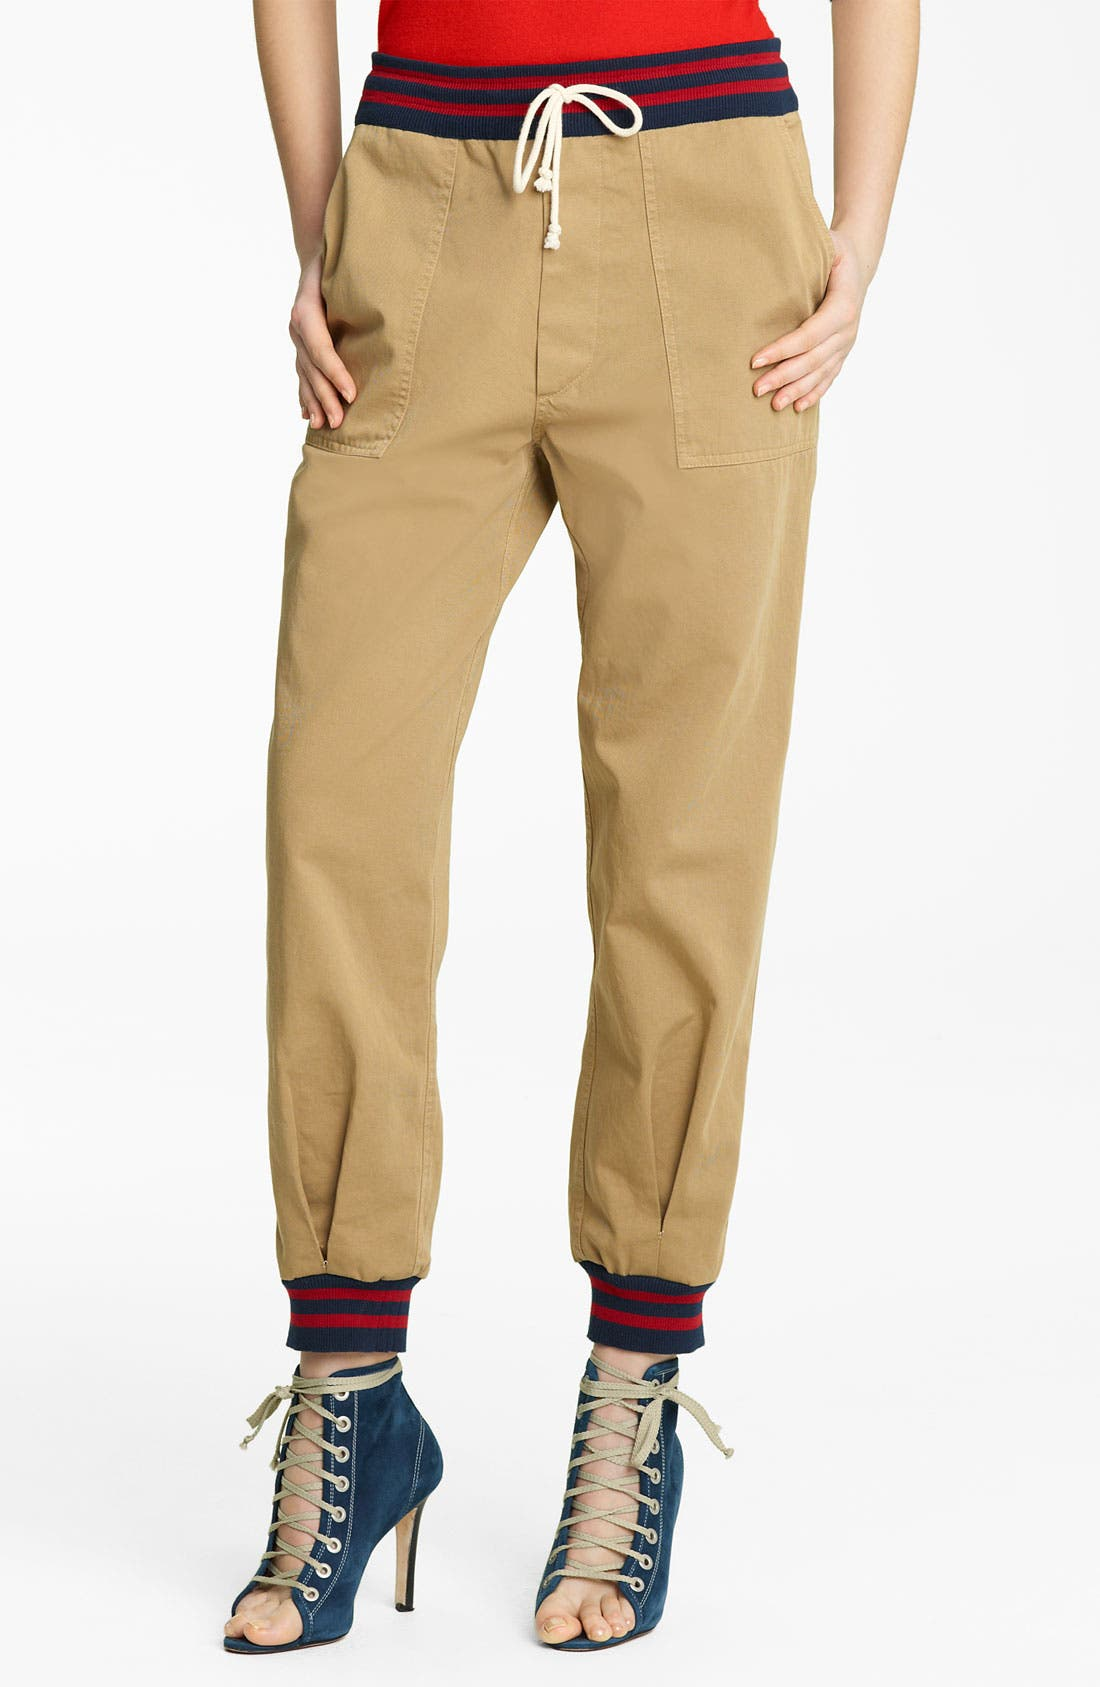 Alternate Image 1 Selected - Band of Outsiders Twill Pants